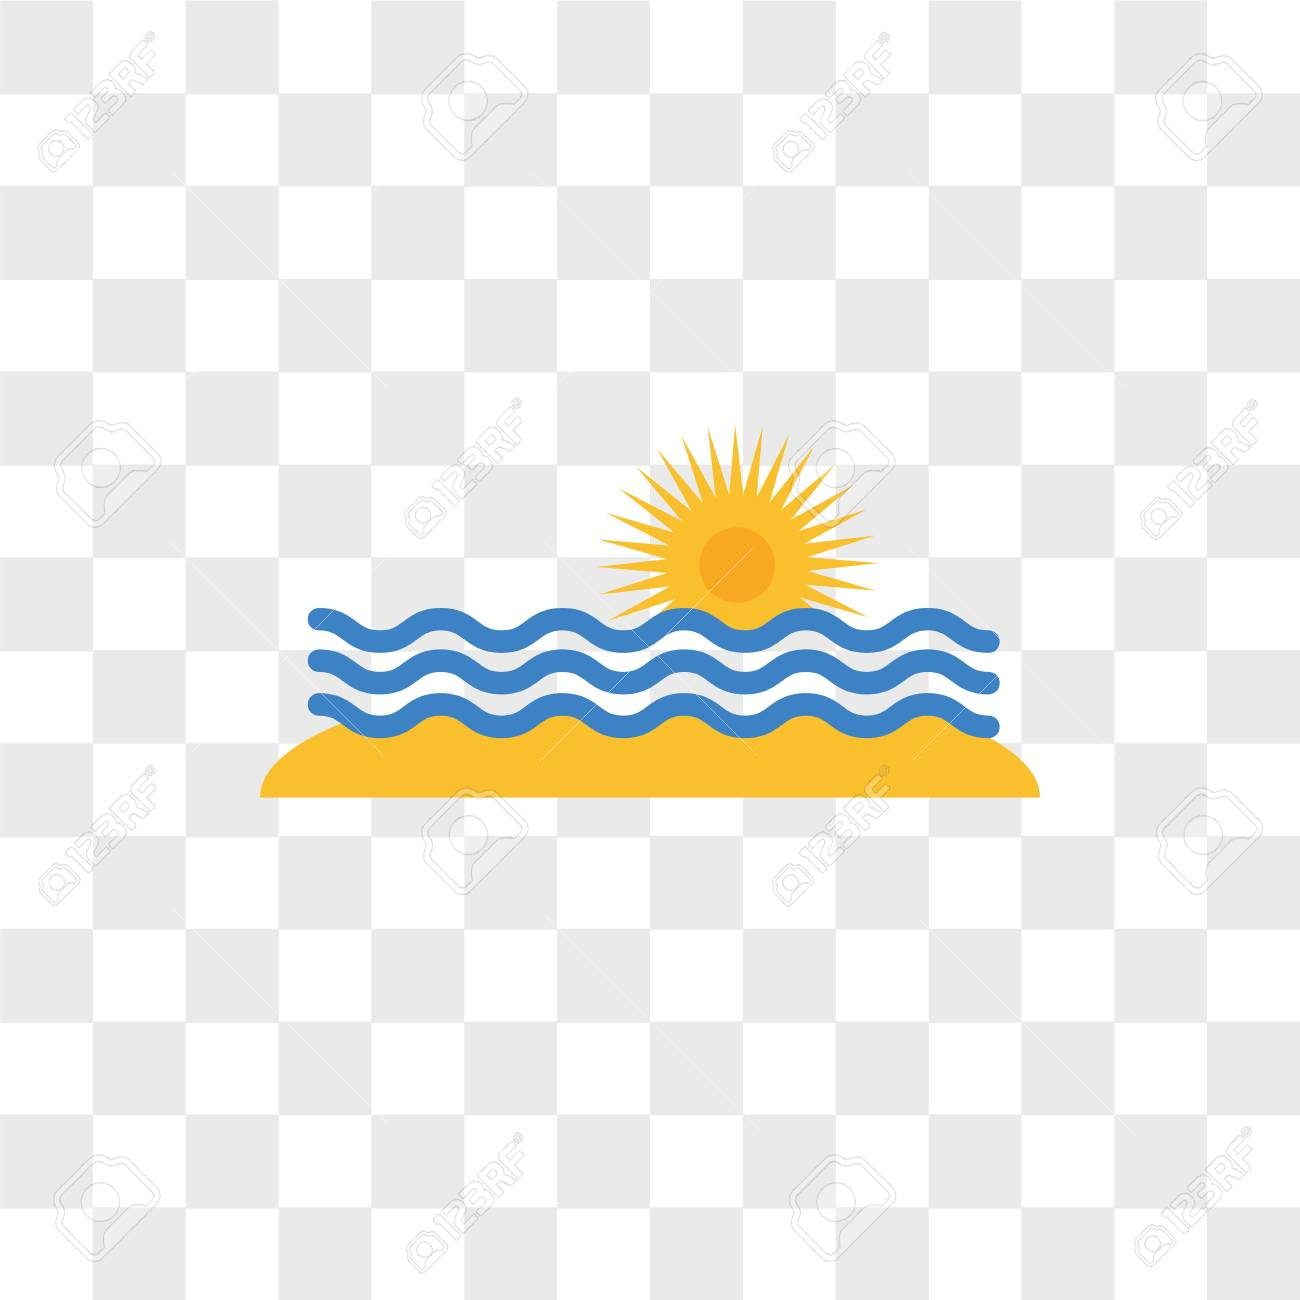 sunset vector icon isolated on transparent background sunset royalty free cliparts vectors and stock illustration image 108100815 sunset vector icon isolated on transparent background sunset